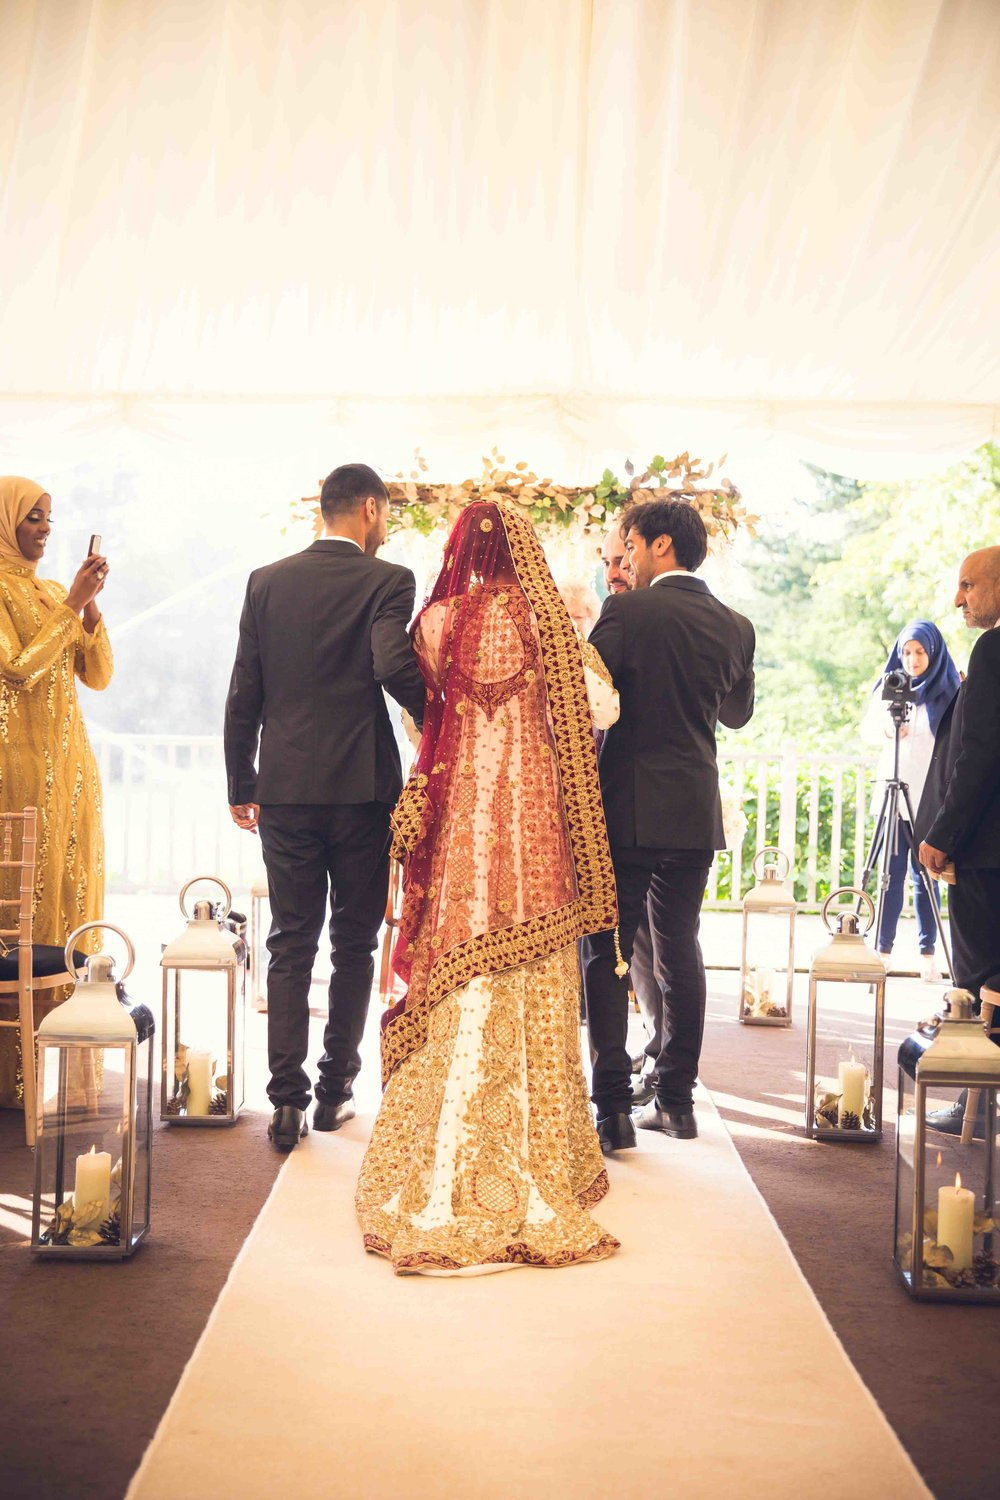 Asian Wedding Photographer Opu Sultan Photography Lyme Park Scotland Edinburgh Glasgow London Manchester Liverpool Birmingham Wedding Photos prewed shoot Azman & Saira Blog-66.jpg